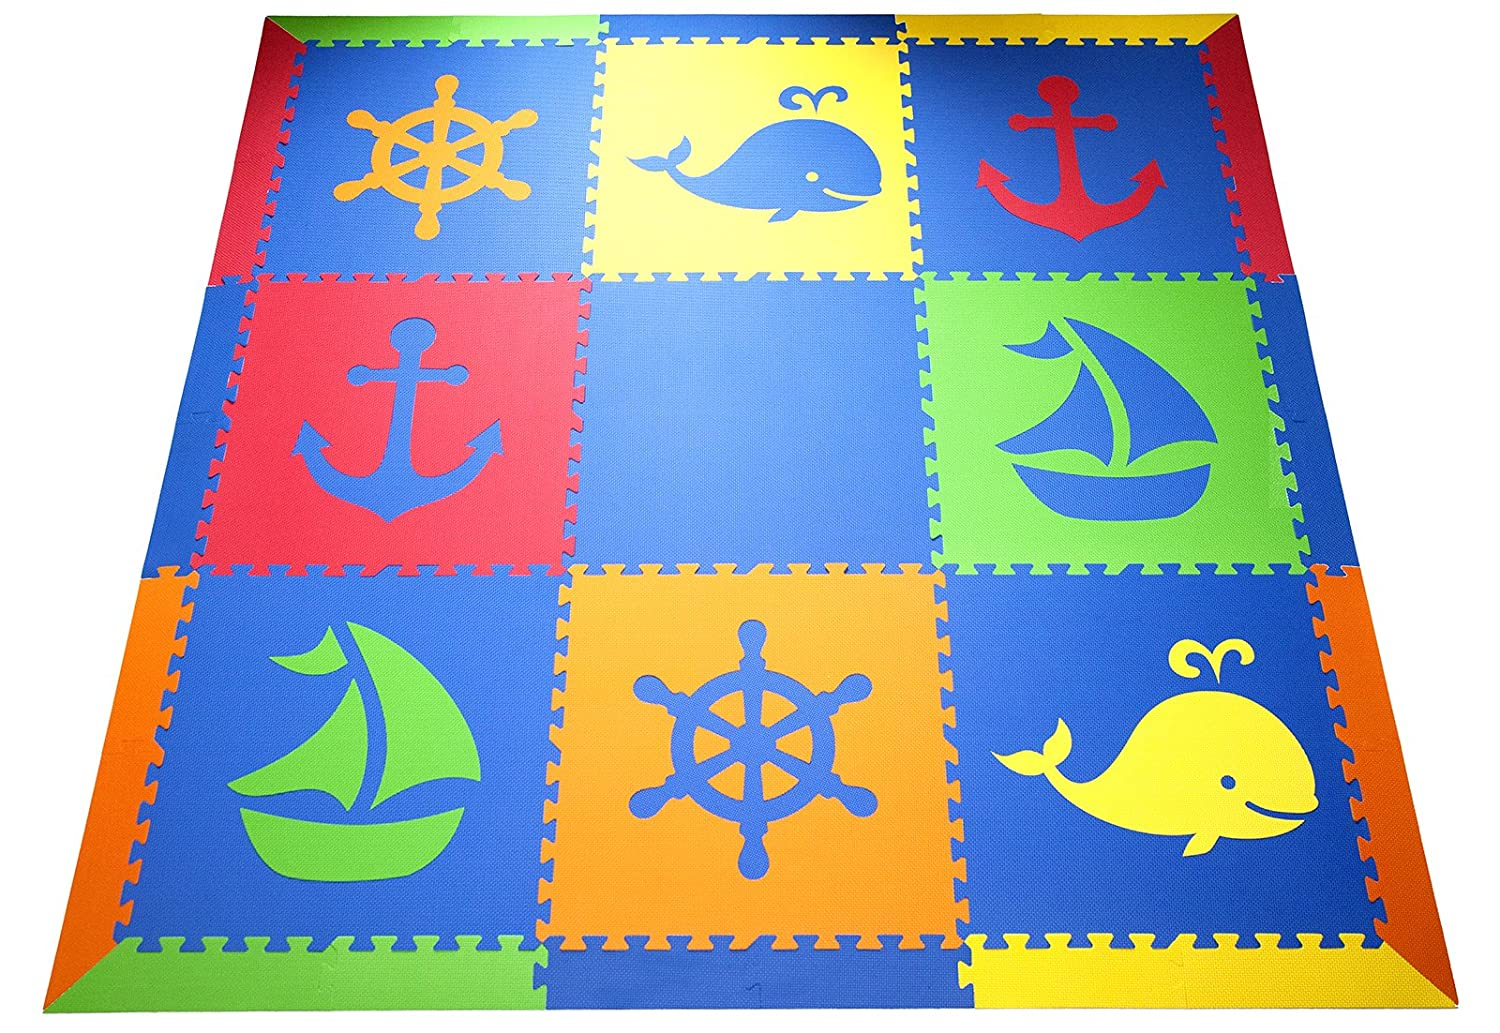 Amazon softtiles kids baby foam playmat nautical ocean theme amazon softtiles kids baby foam playmat nautical ocean theme interlocking blue red orange yellow lime floor tiles for childrens playrooms and dailygadgetfo Gallery